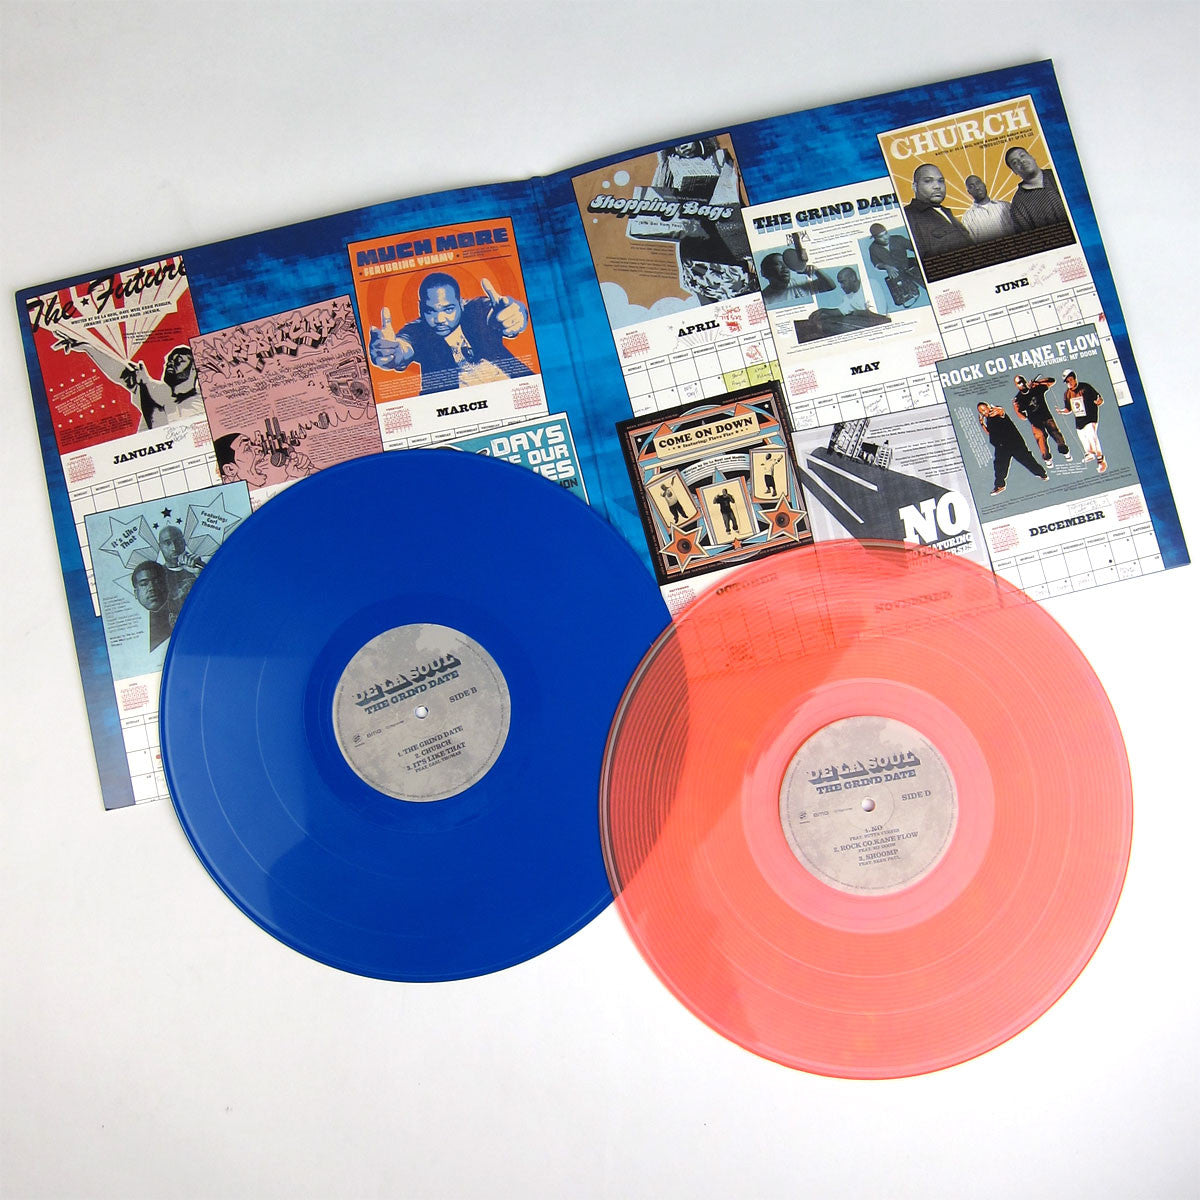 De La Soul: The Grind Date 10th Anniversary Edition (Blue & Orange Vinyl) Vinyl 2LP detail